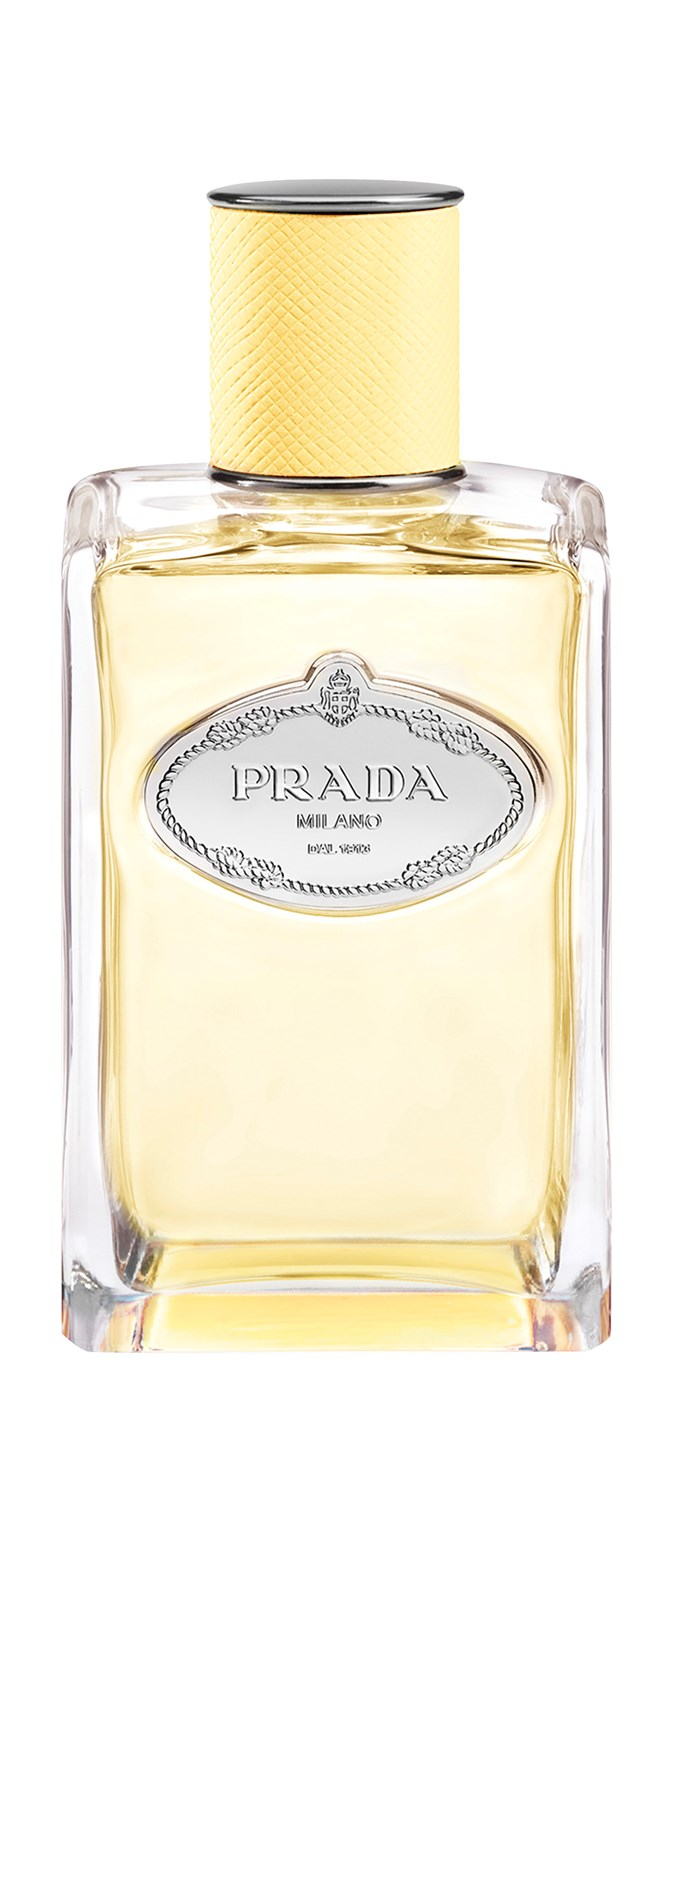 <p>Prada's Infusion collection focuses on enhancing a single ingredient for each scent. The newest addition Mimosa is a soft, floral fragrance that was created to smell like a tree in full bloom.  Star Anise Oil blends with mimosa, mandarin and rose for a velvety scent that is perfect for spring/summer.</p> <p><em>Les Infusions De Prada Mimosa, $175 for 100ml, Prada, 1800 241 092</em></p>